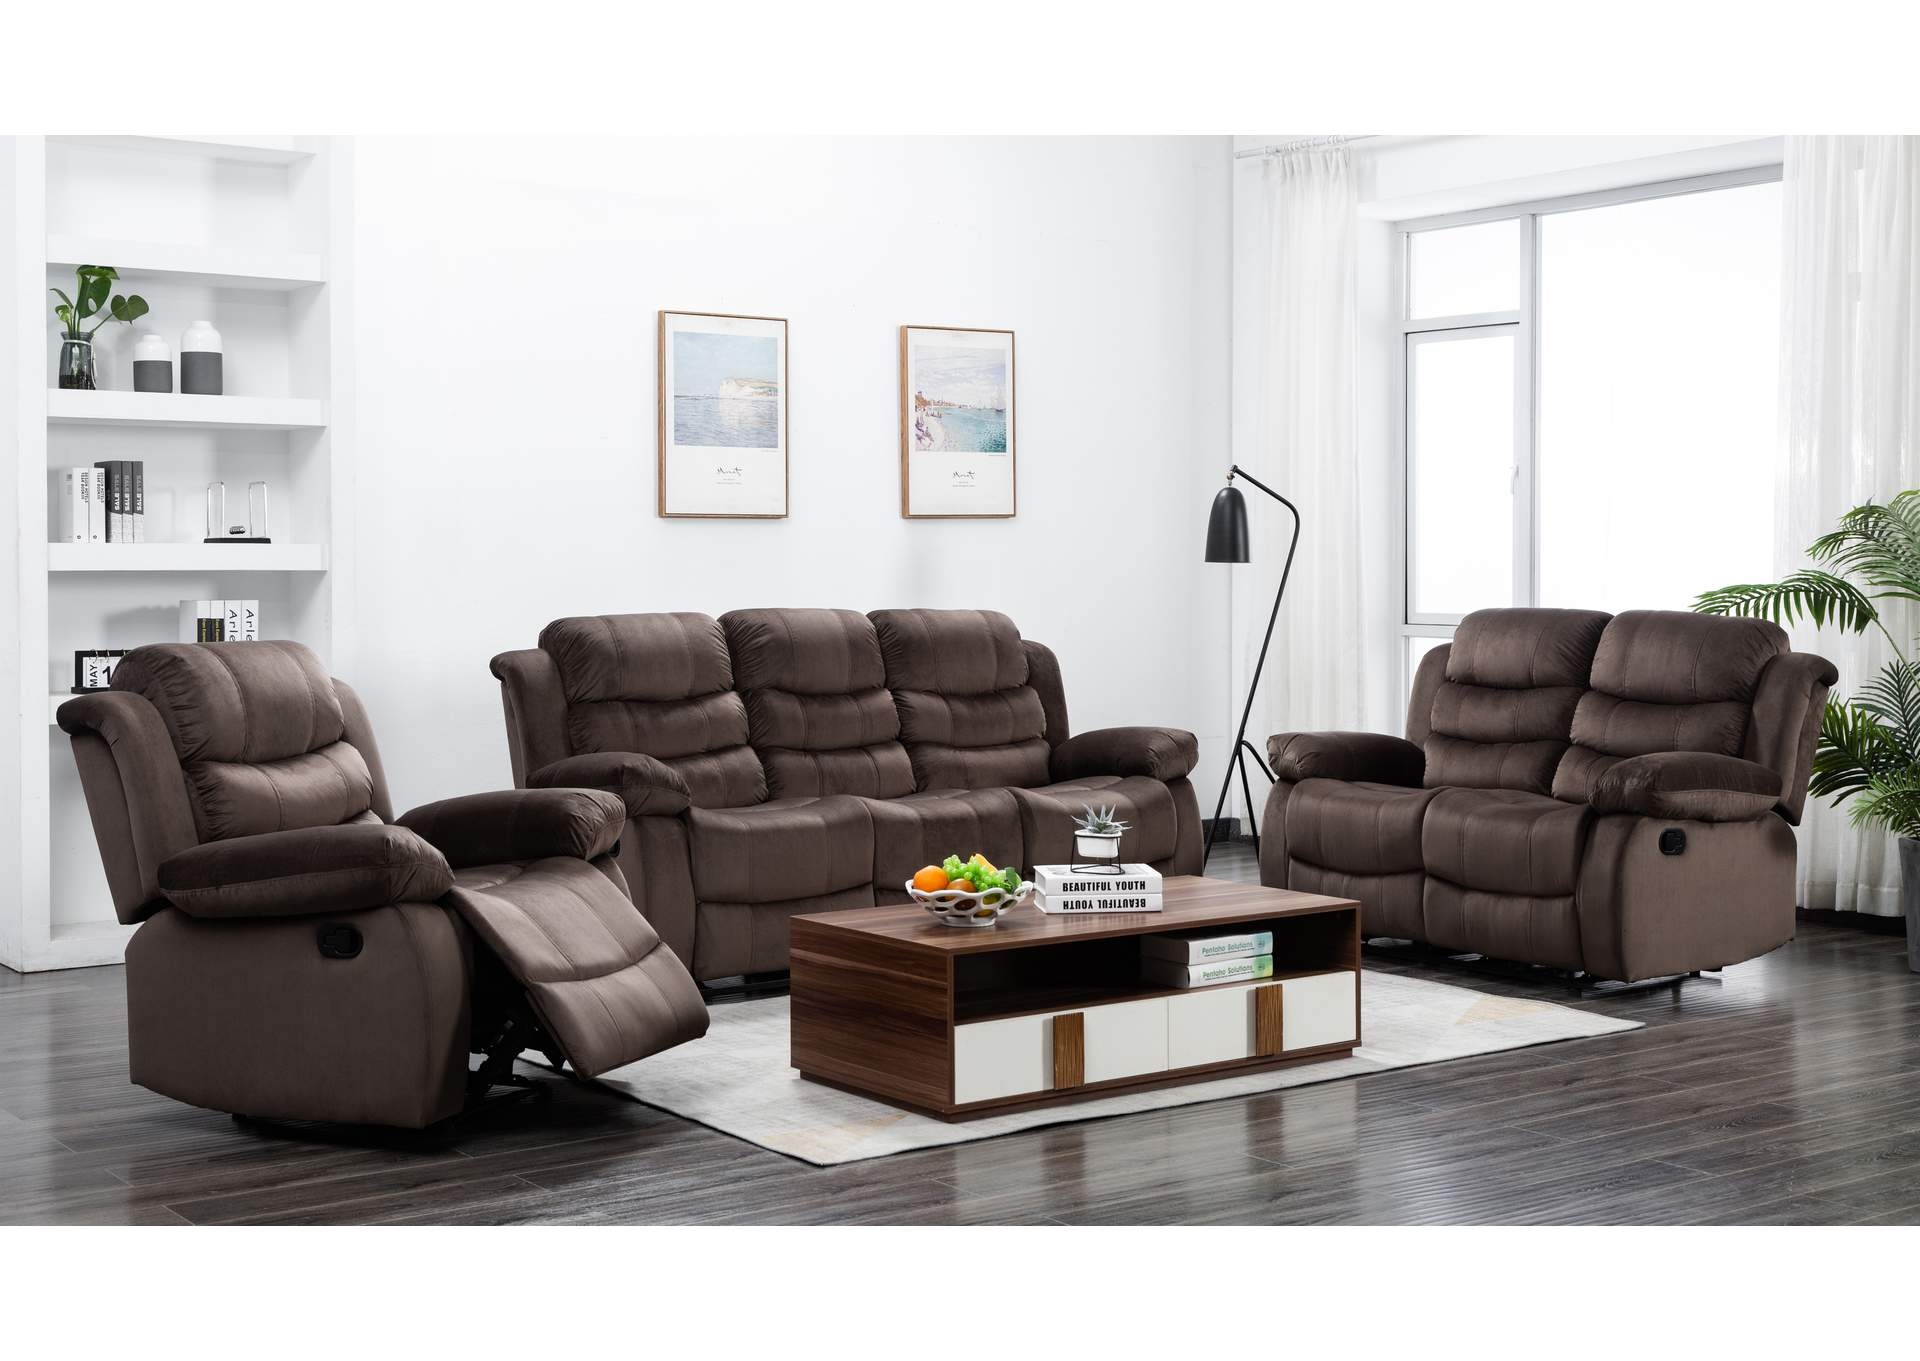 Cocoa Short Plush Reclining Sofa & Loveseat,Global Trading